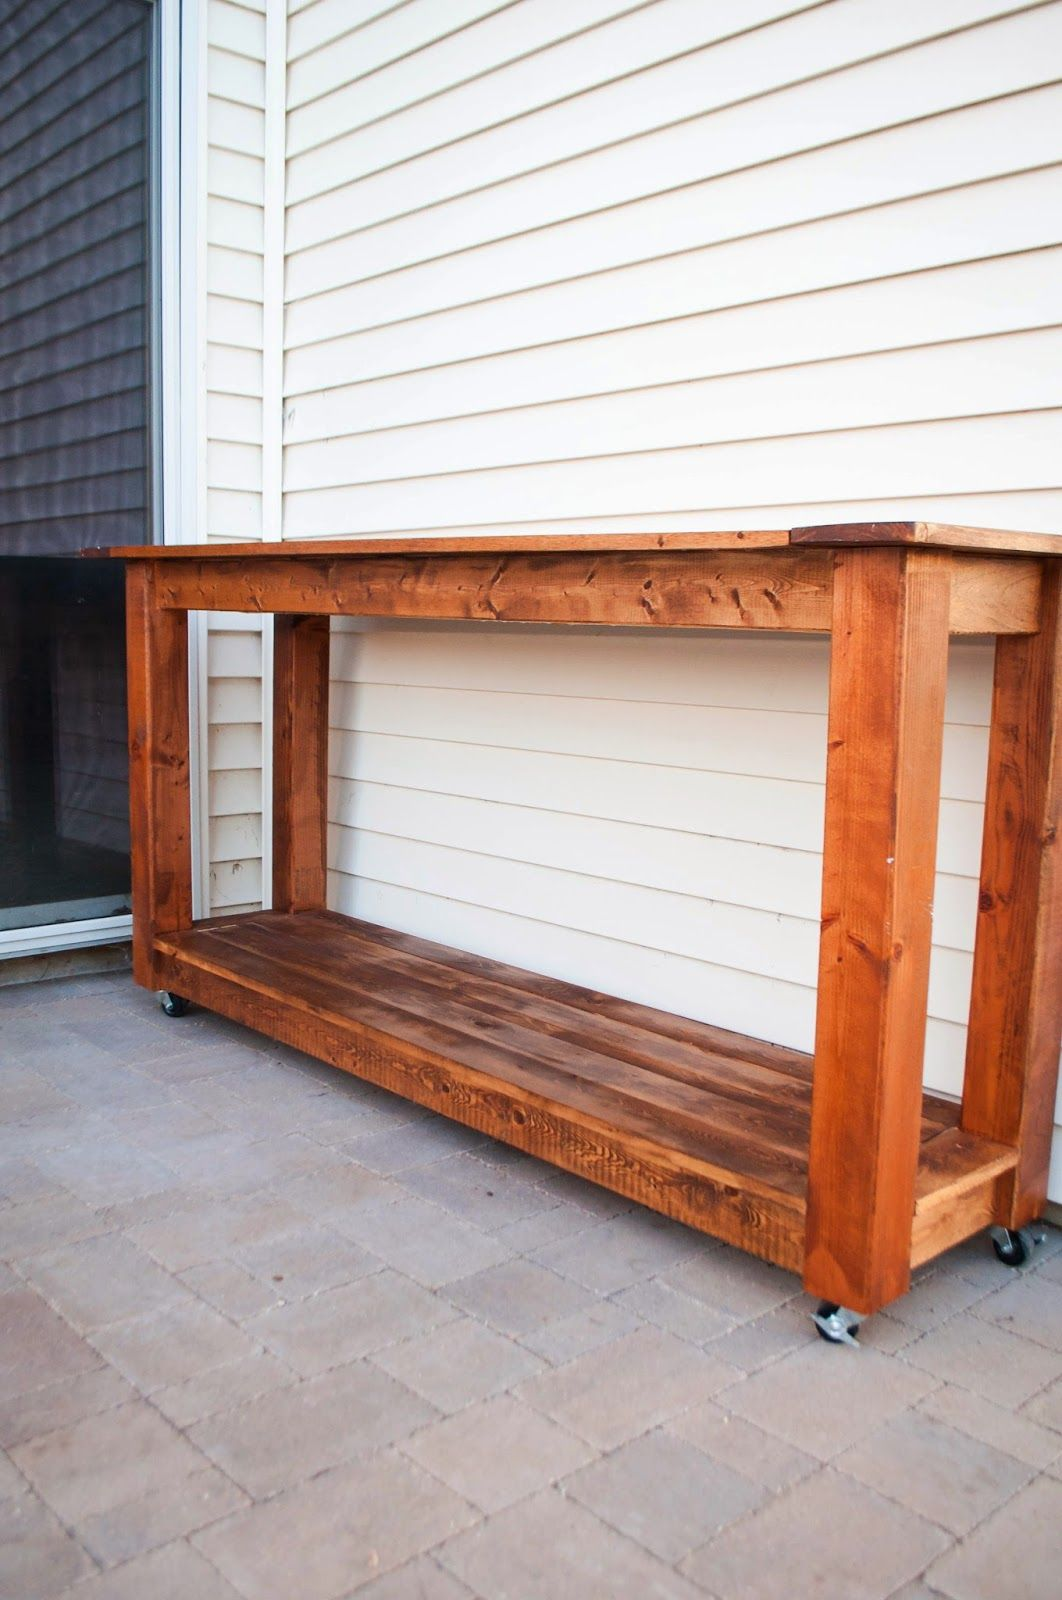 Outdoor buffet table serving cart as well century modern console table - Diy Outdoor Serving Table What If There Was A Larger Top That When Not In Use Could Fold To The Side Of The Table So That Part Would Be Between The Table